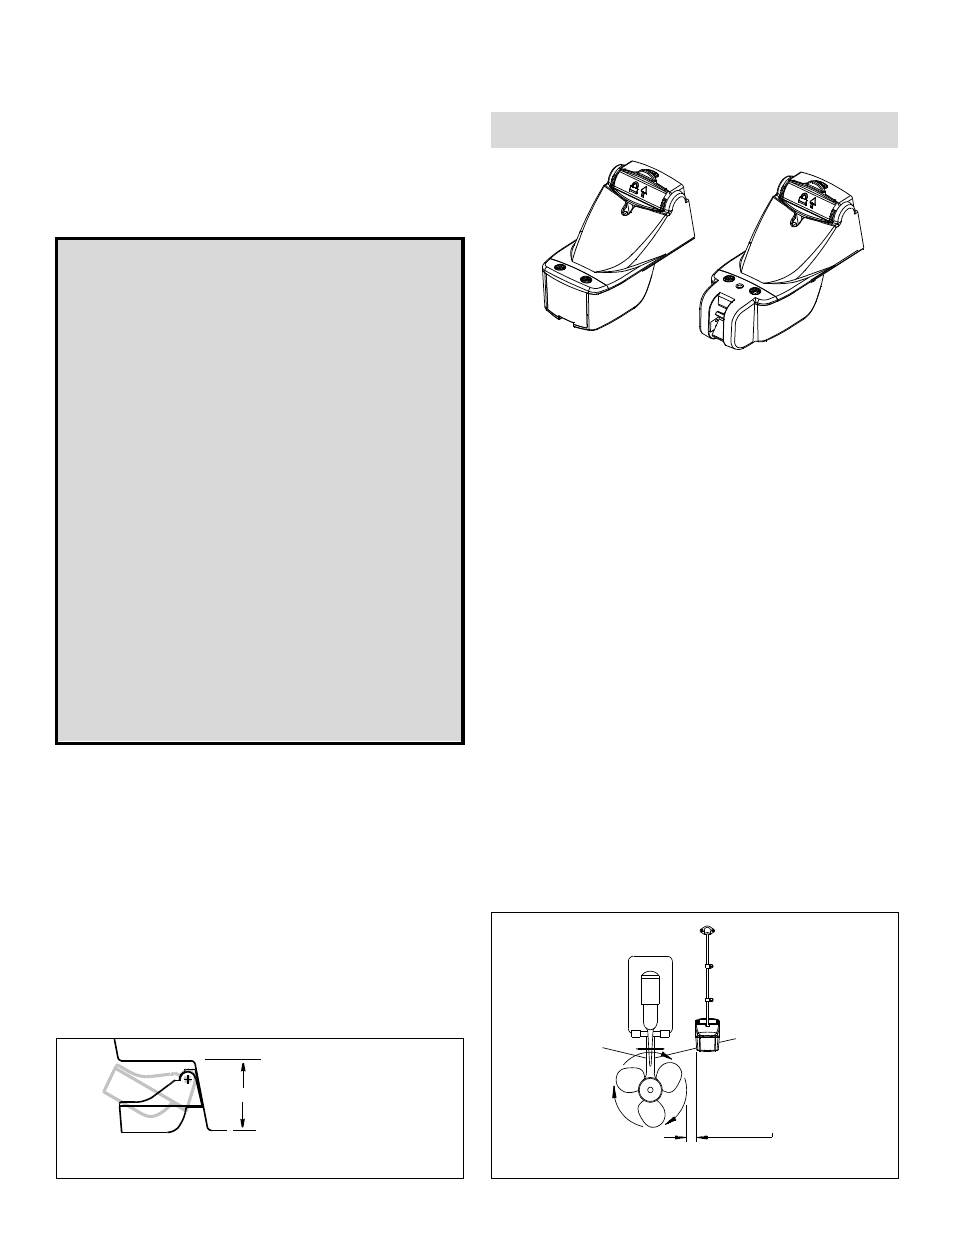 Airmar P66 User Manual | 4 pages